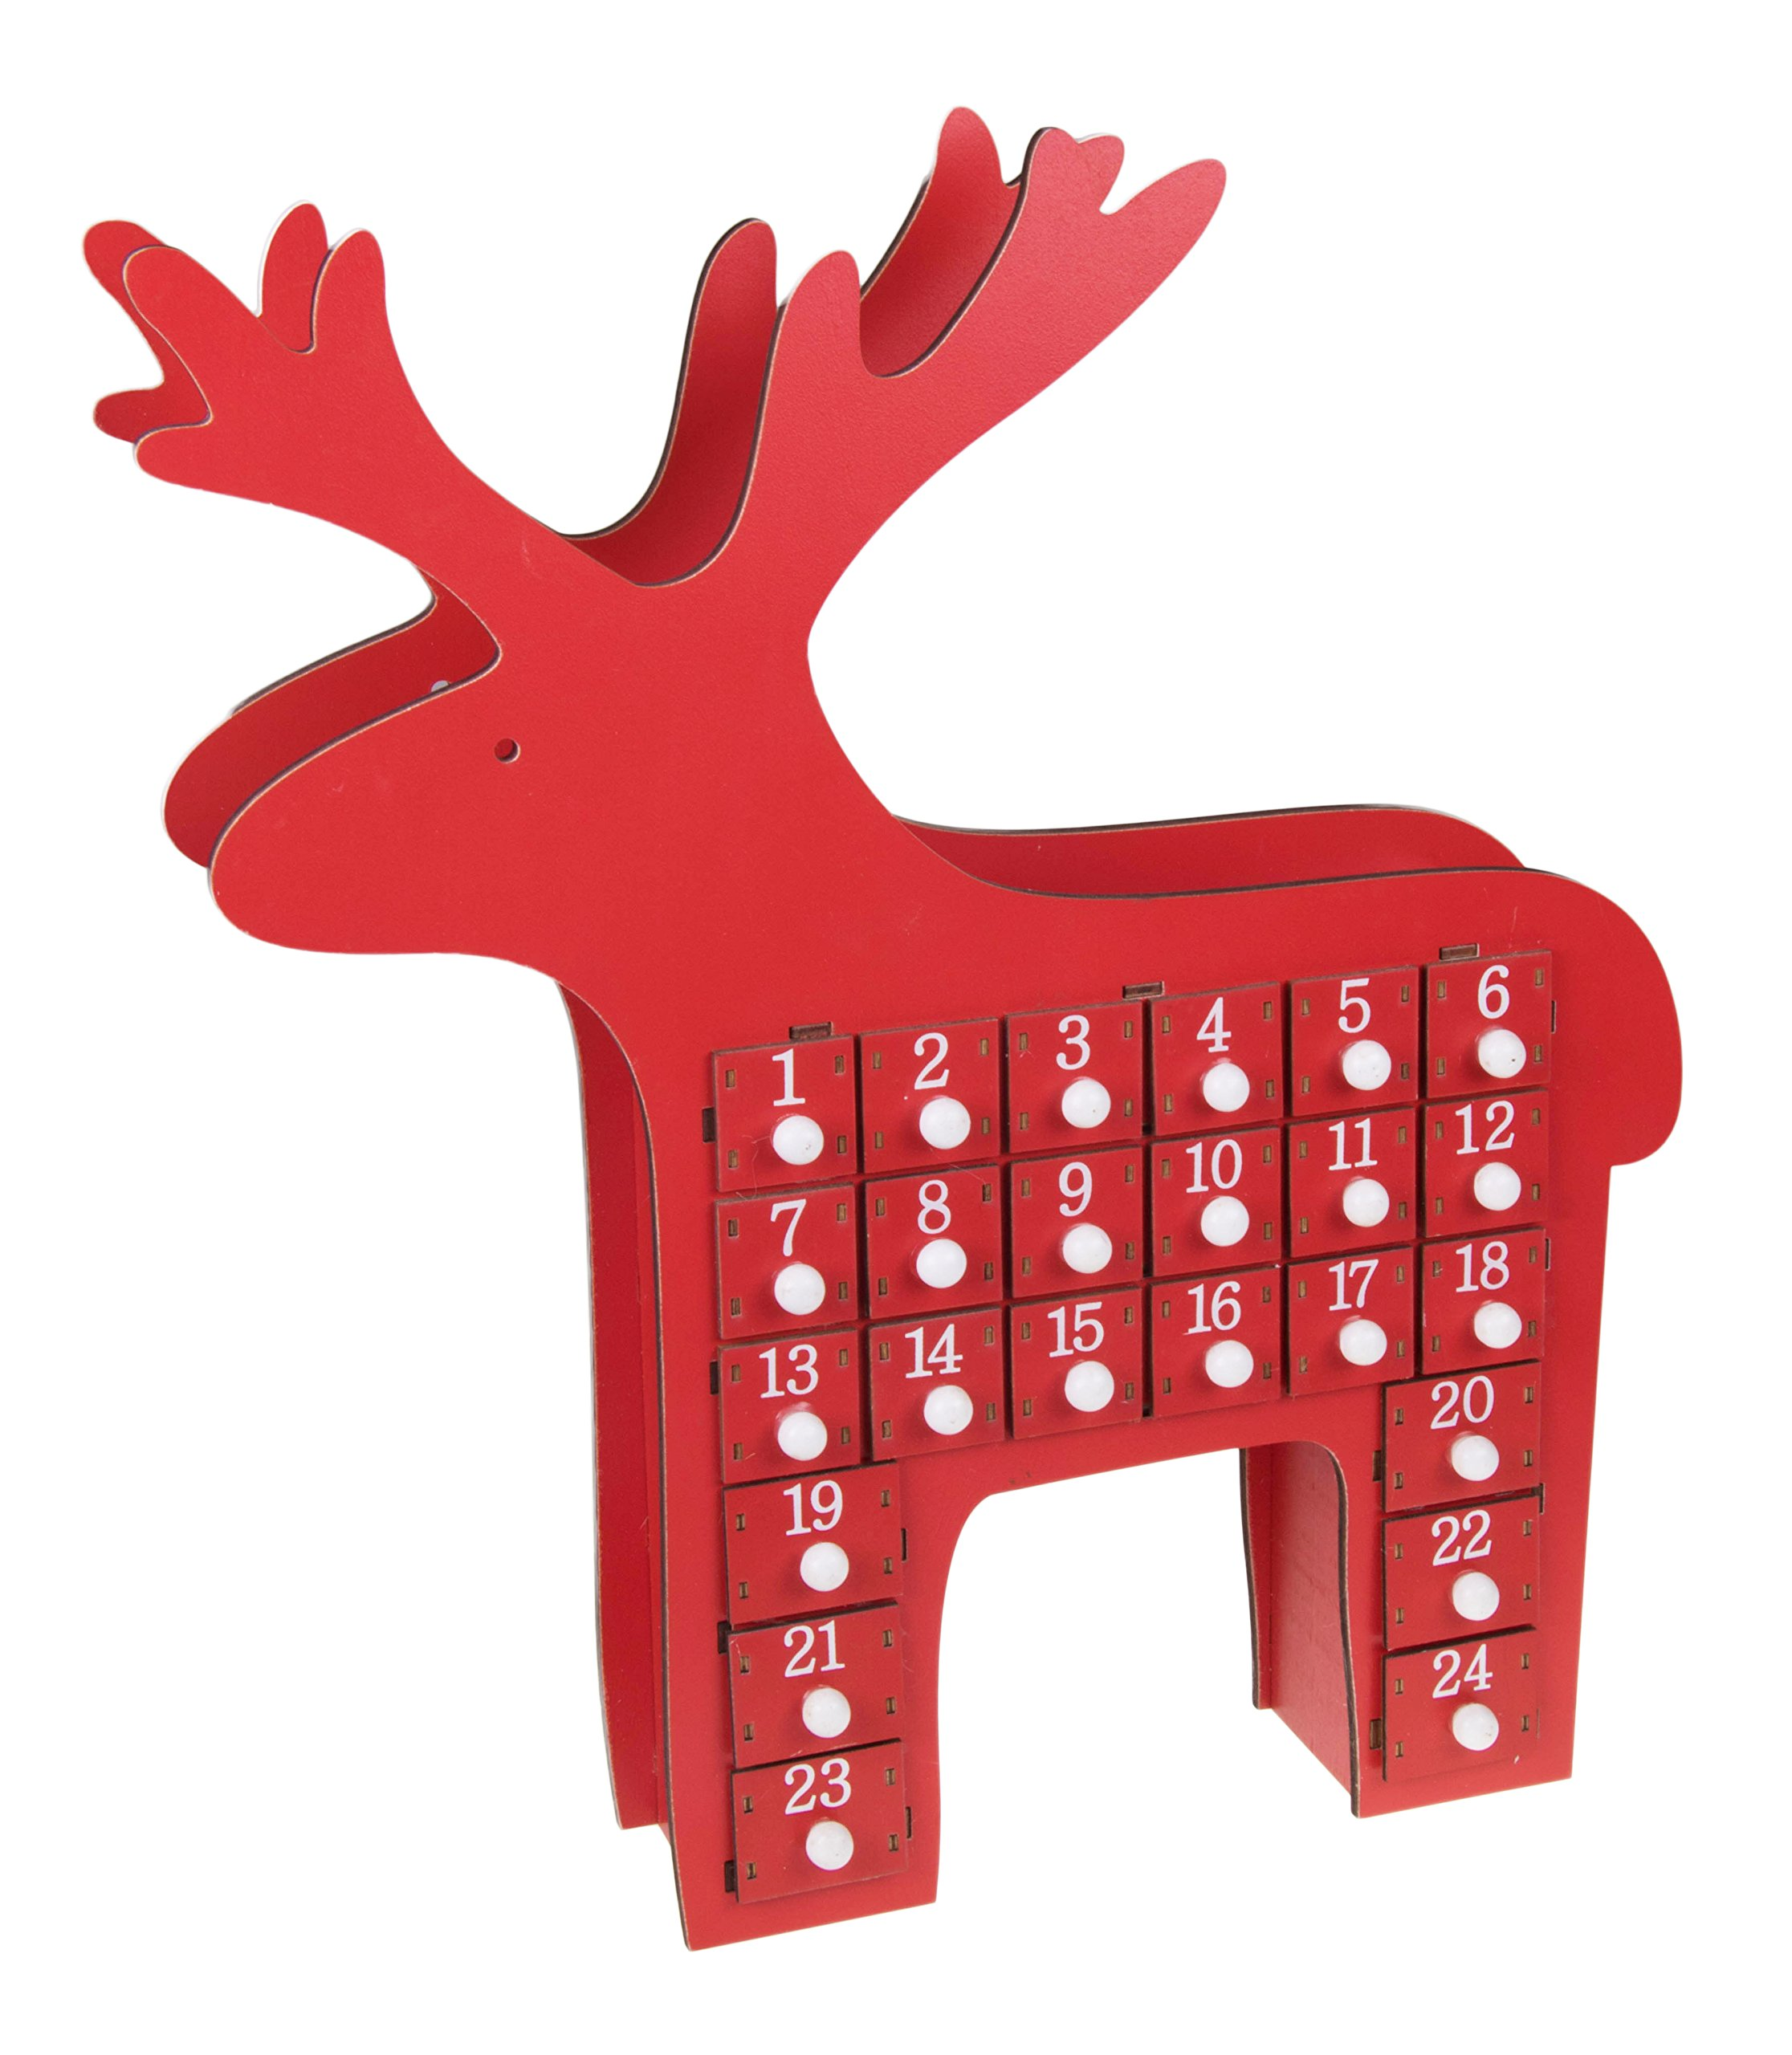 Red Reindeer Advent Calendar by Clever Creations | 24 Day Countdown to Christmas Calendar | Premium Décor | Painted Rudolph | Wood Construction | Cute Holiday Decoration | Measures 15'' x 2.75'' x 17.5''